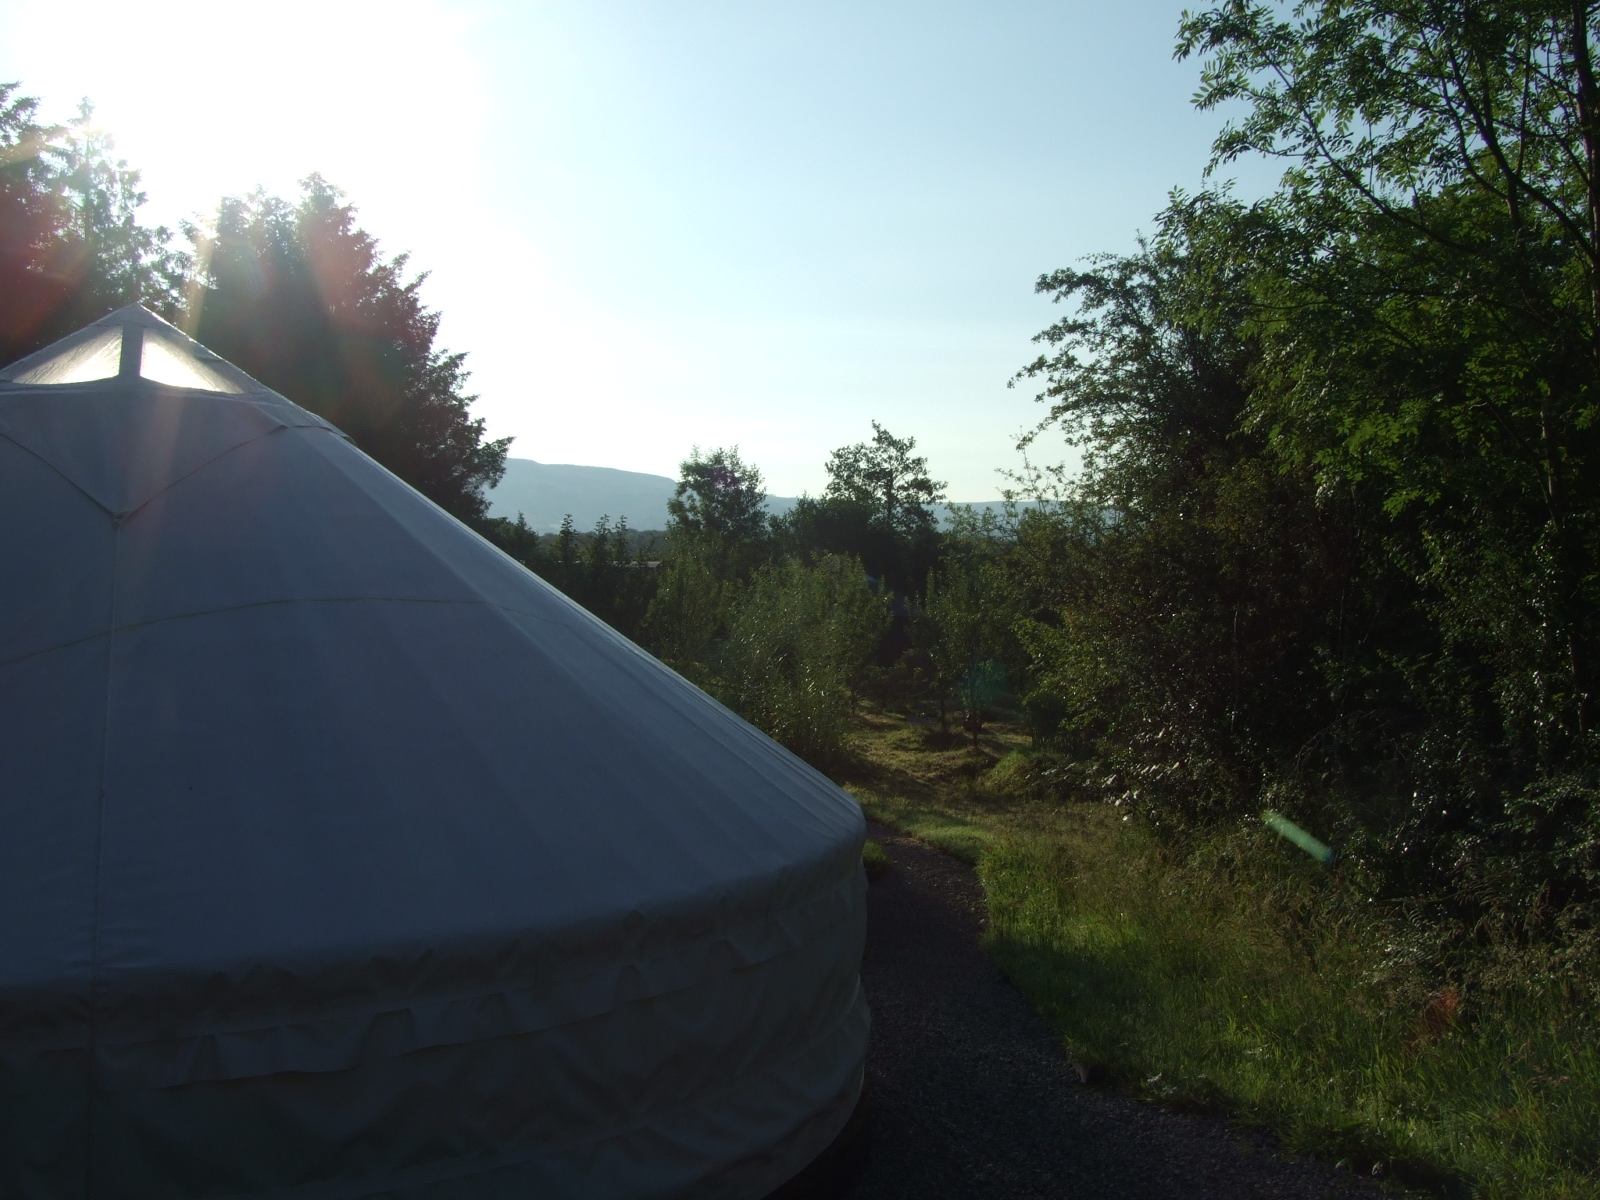 Yurts Made in Ireland. Sunrise Sanctuary Yurt - irelandglamping.com